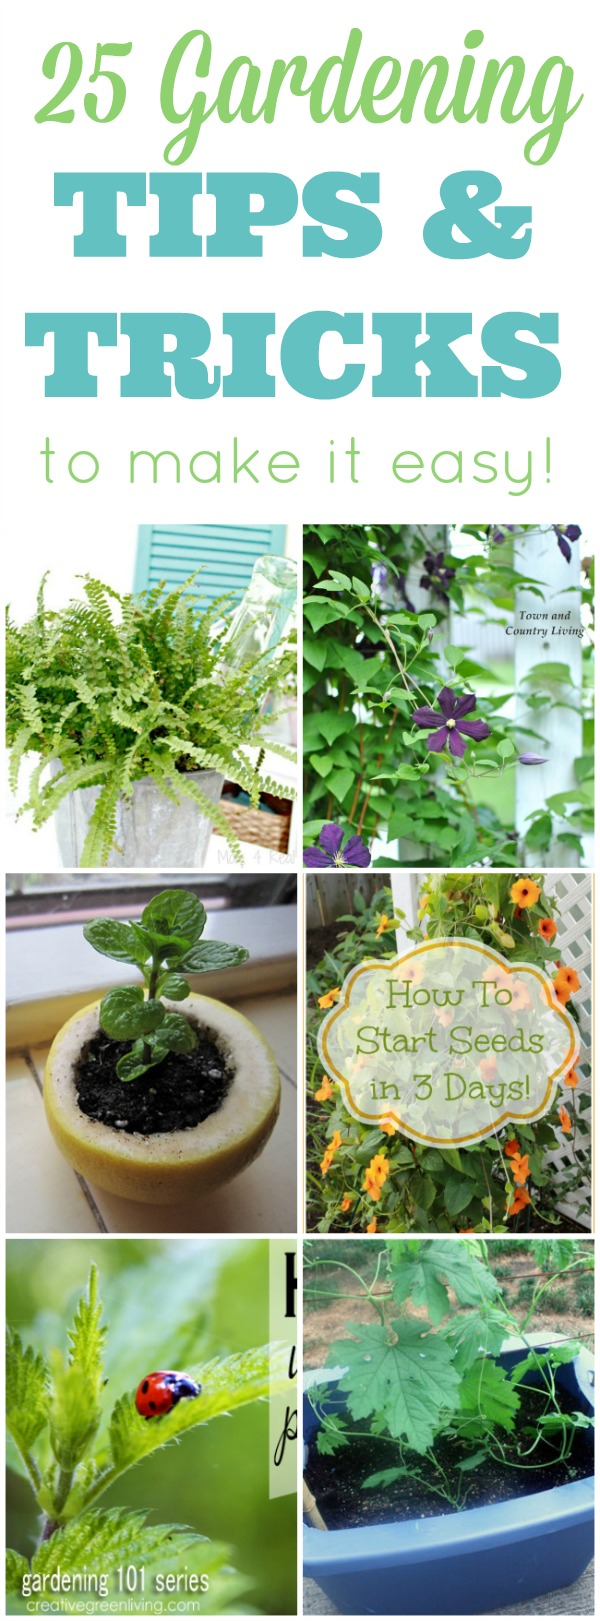 24 Gardening Tips and Tricks